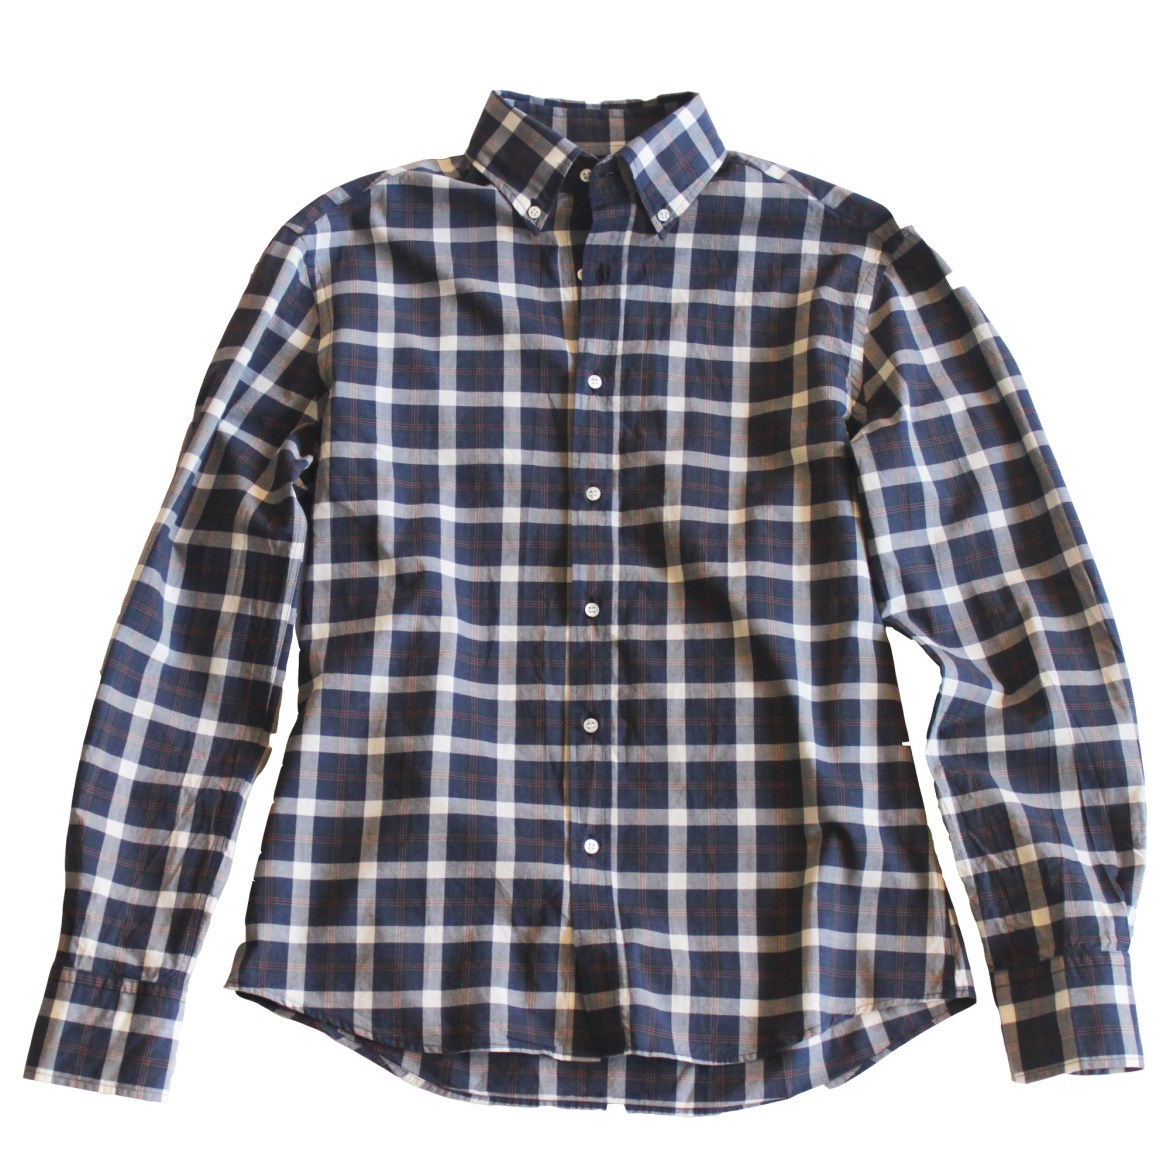 Michael Bastian Button Down Shirt - Plaid Navy - Pink - White